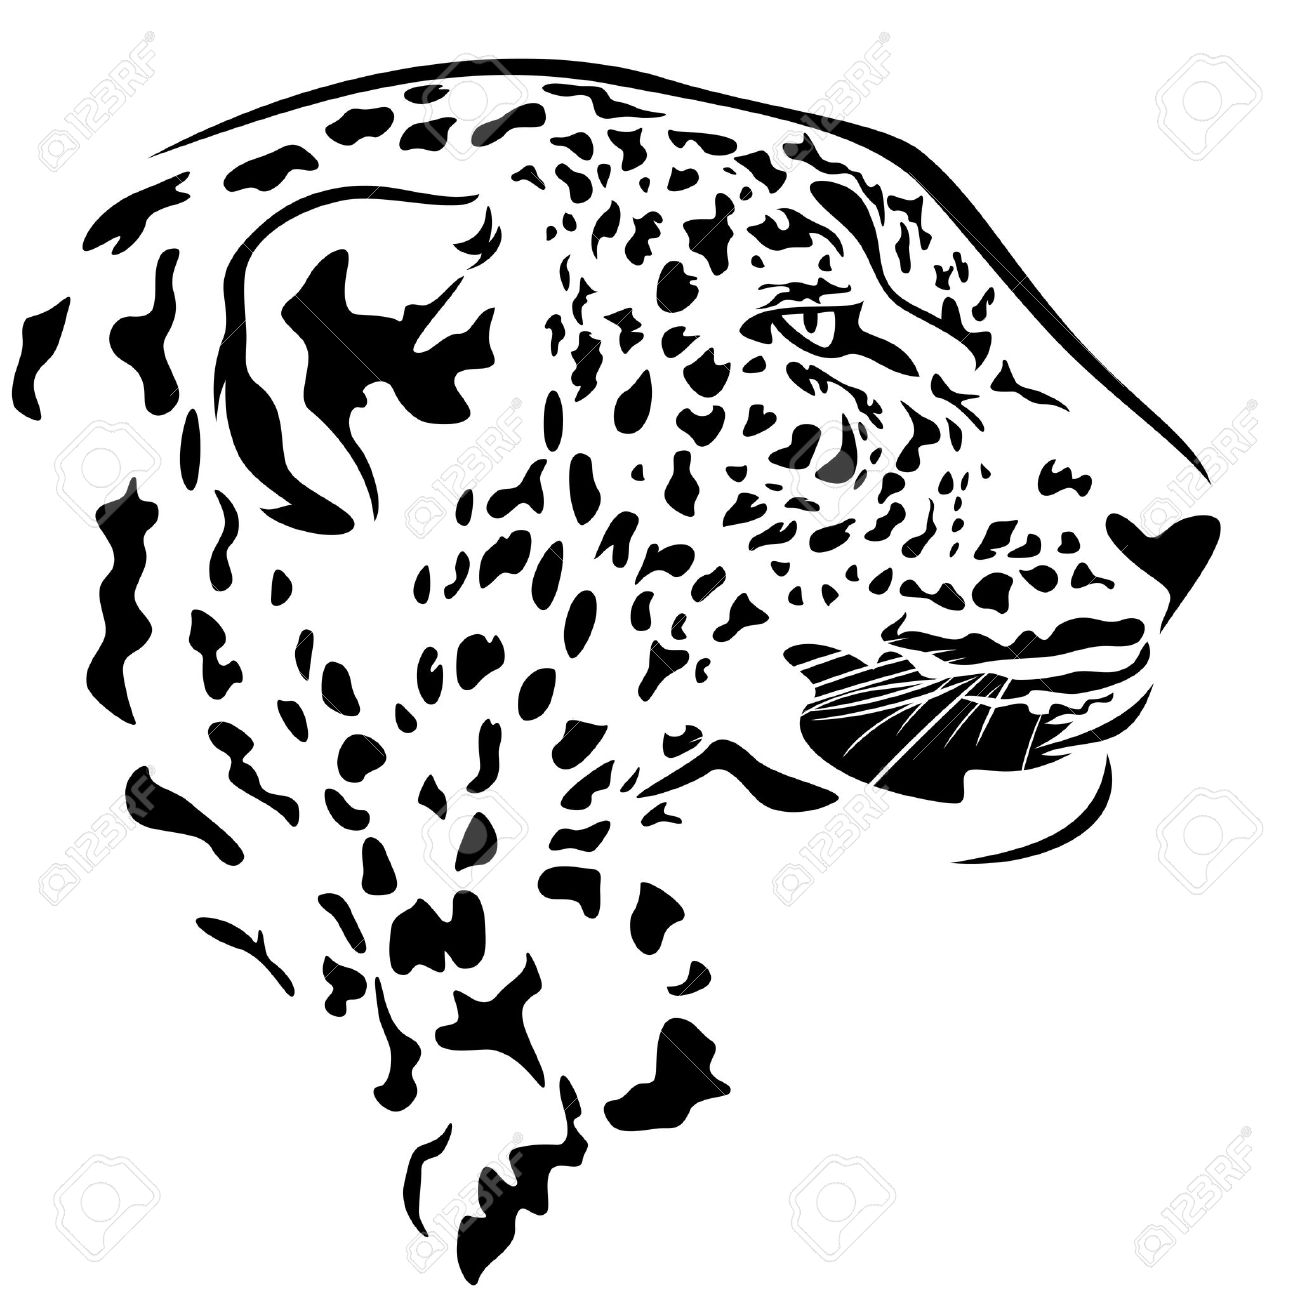 1300x1300 Jaguar Stock Photos. Royalty Free Business Images